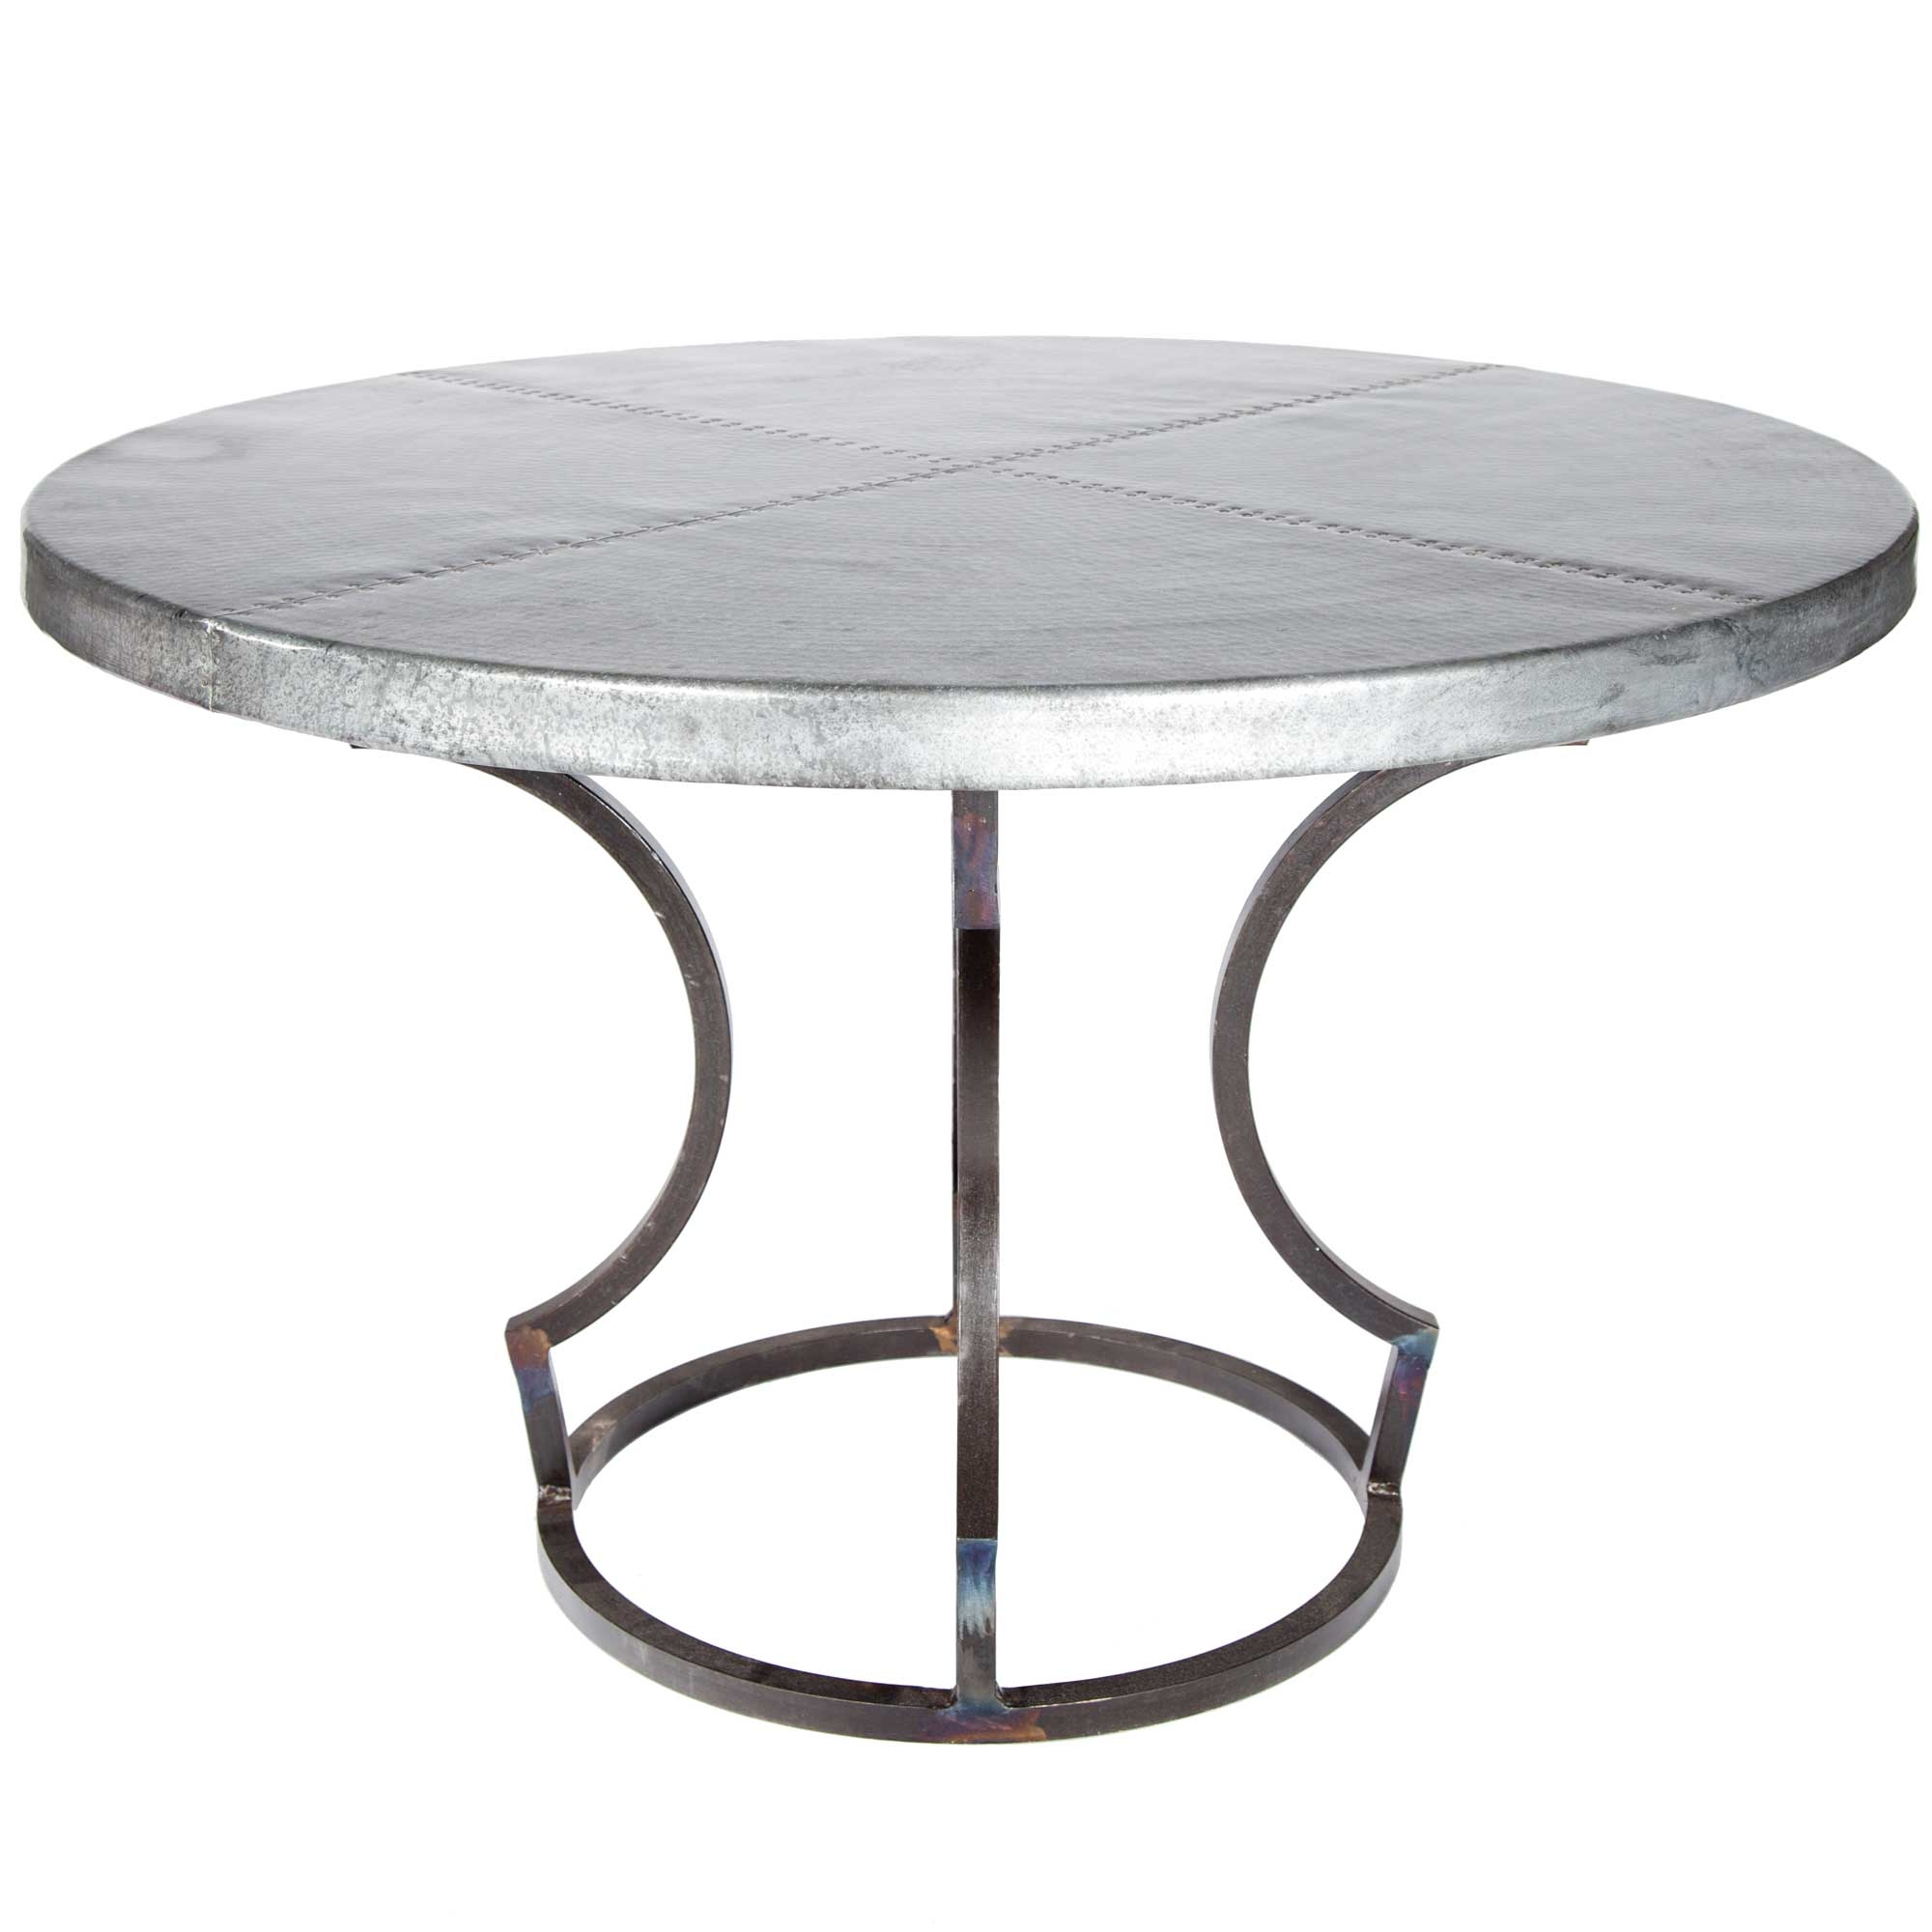 Dining Table With Wrought Iron Base And 48 Round Hammered Larger Photo